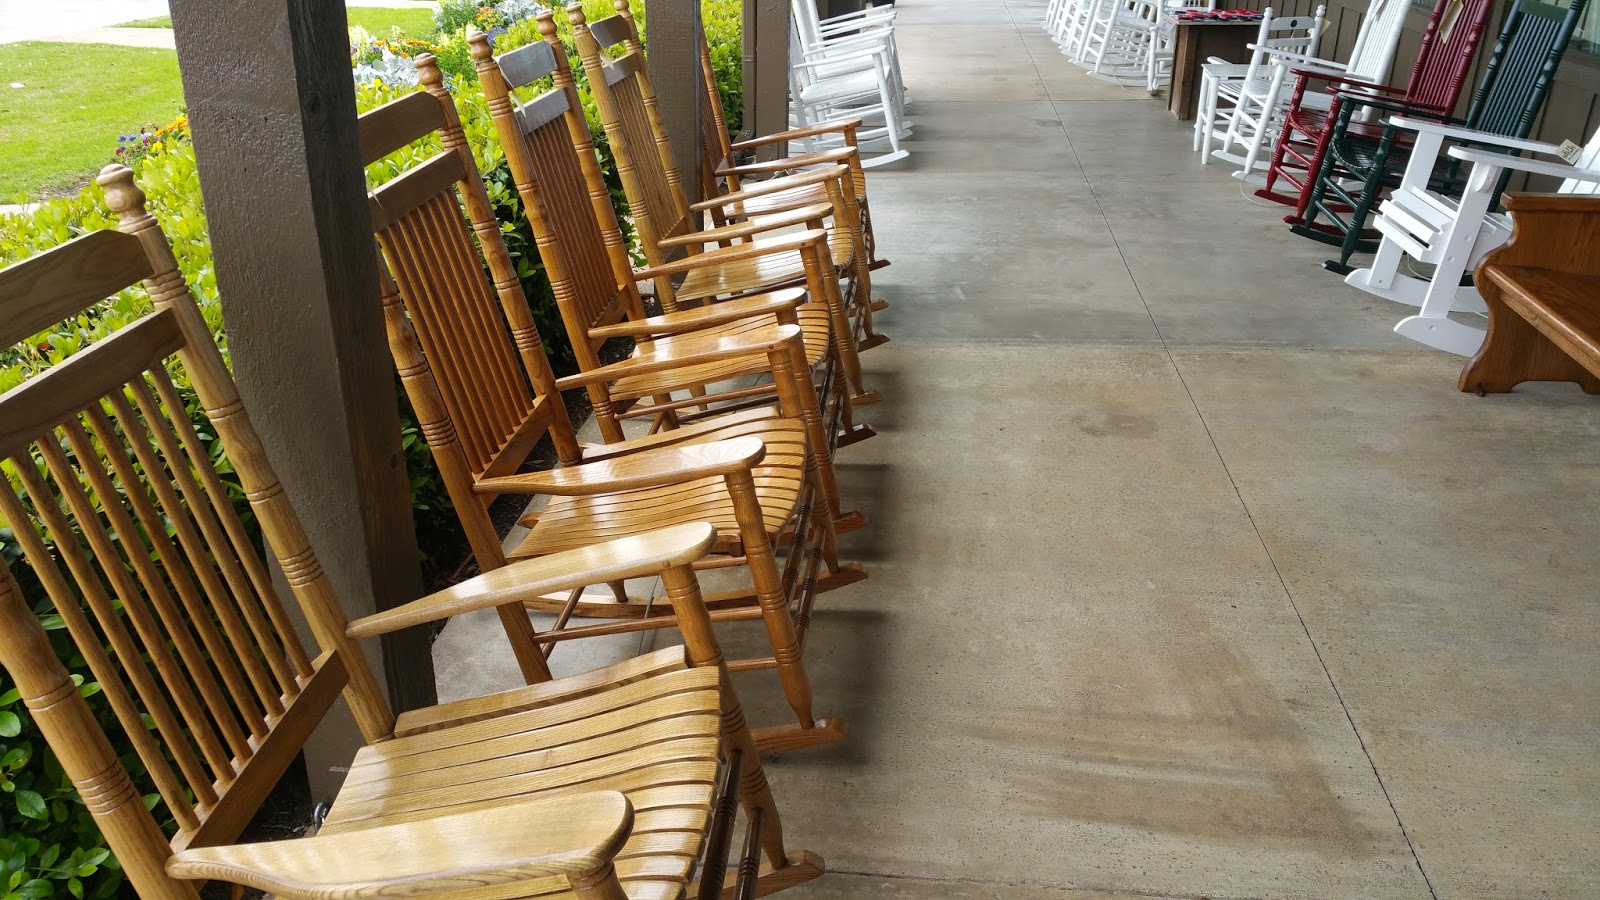 Travel blog by arlon boozer cracker barrel for Front porch furniture sale